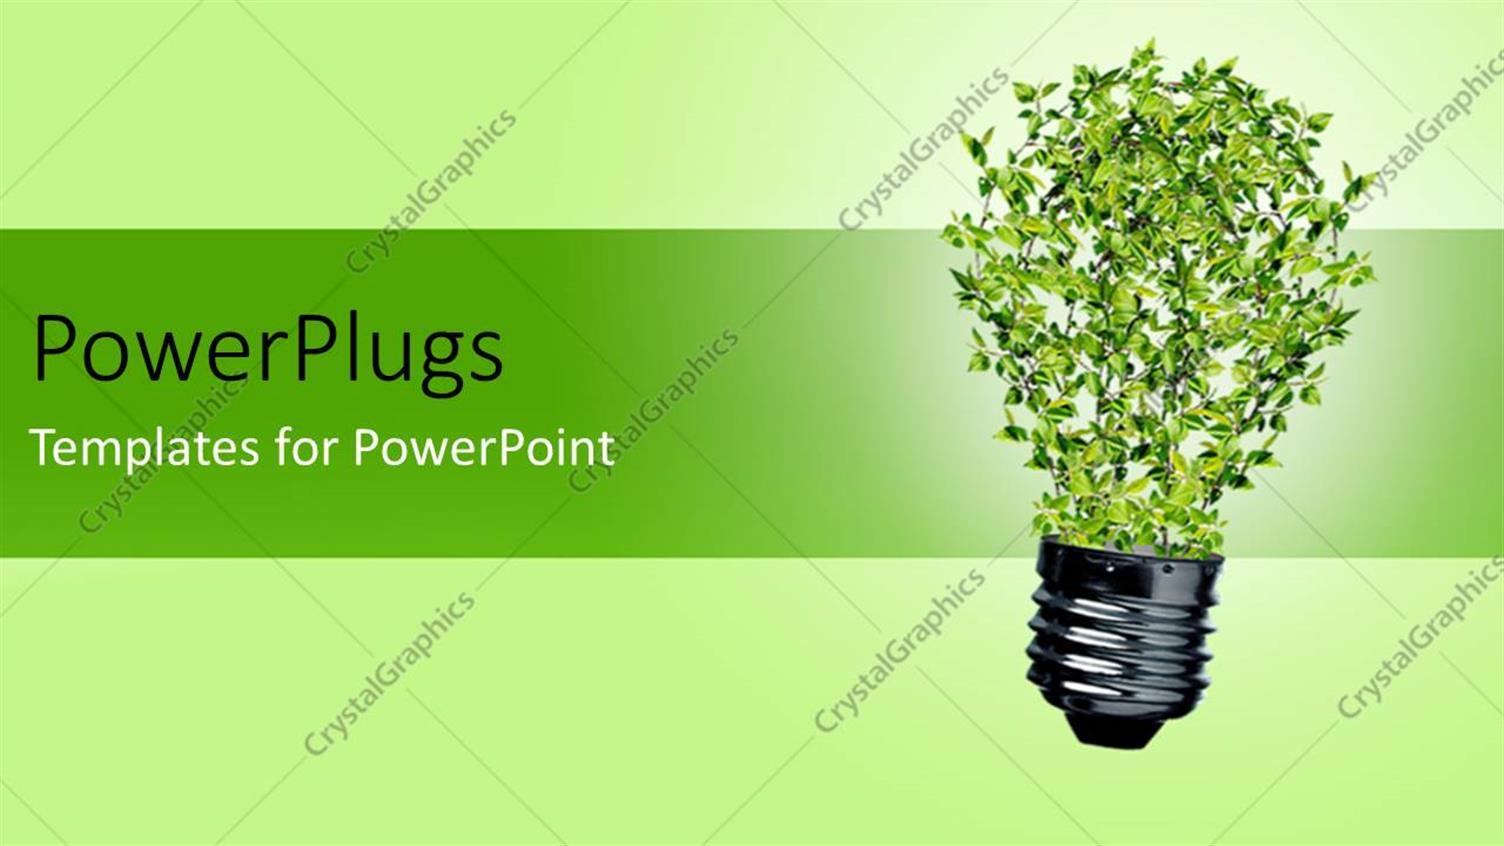 PowerPoint Template Displaying Green Bulb with Leaves as a Symbol of Energy and Nature Depicting Recycle Concept